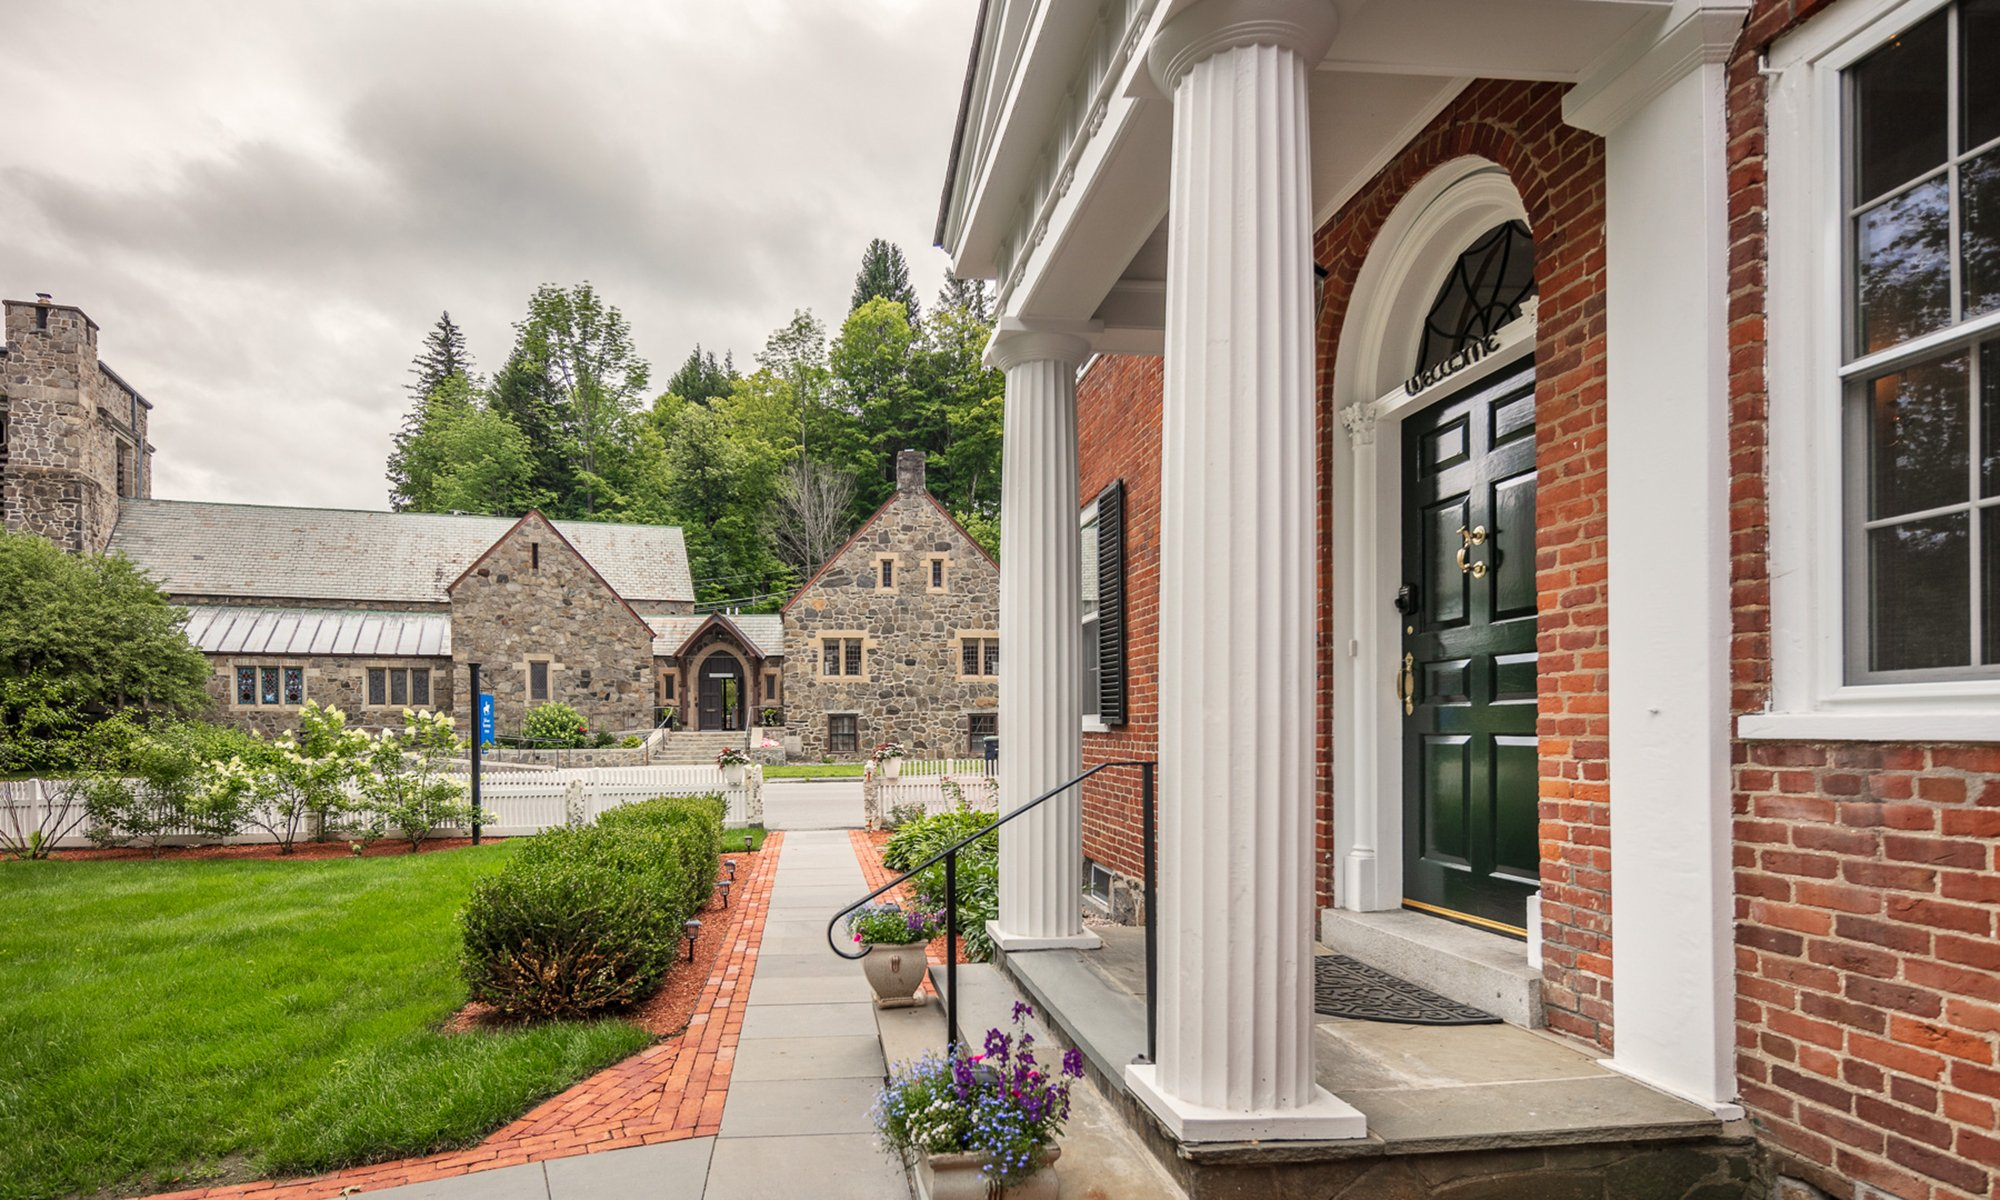 The Blue Horse Inn - Lodging in Woodstock, Vermont